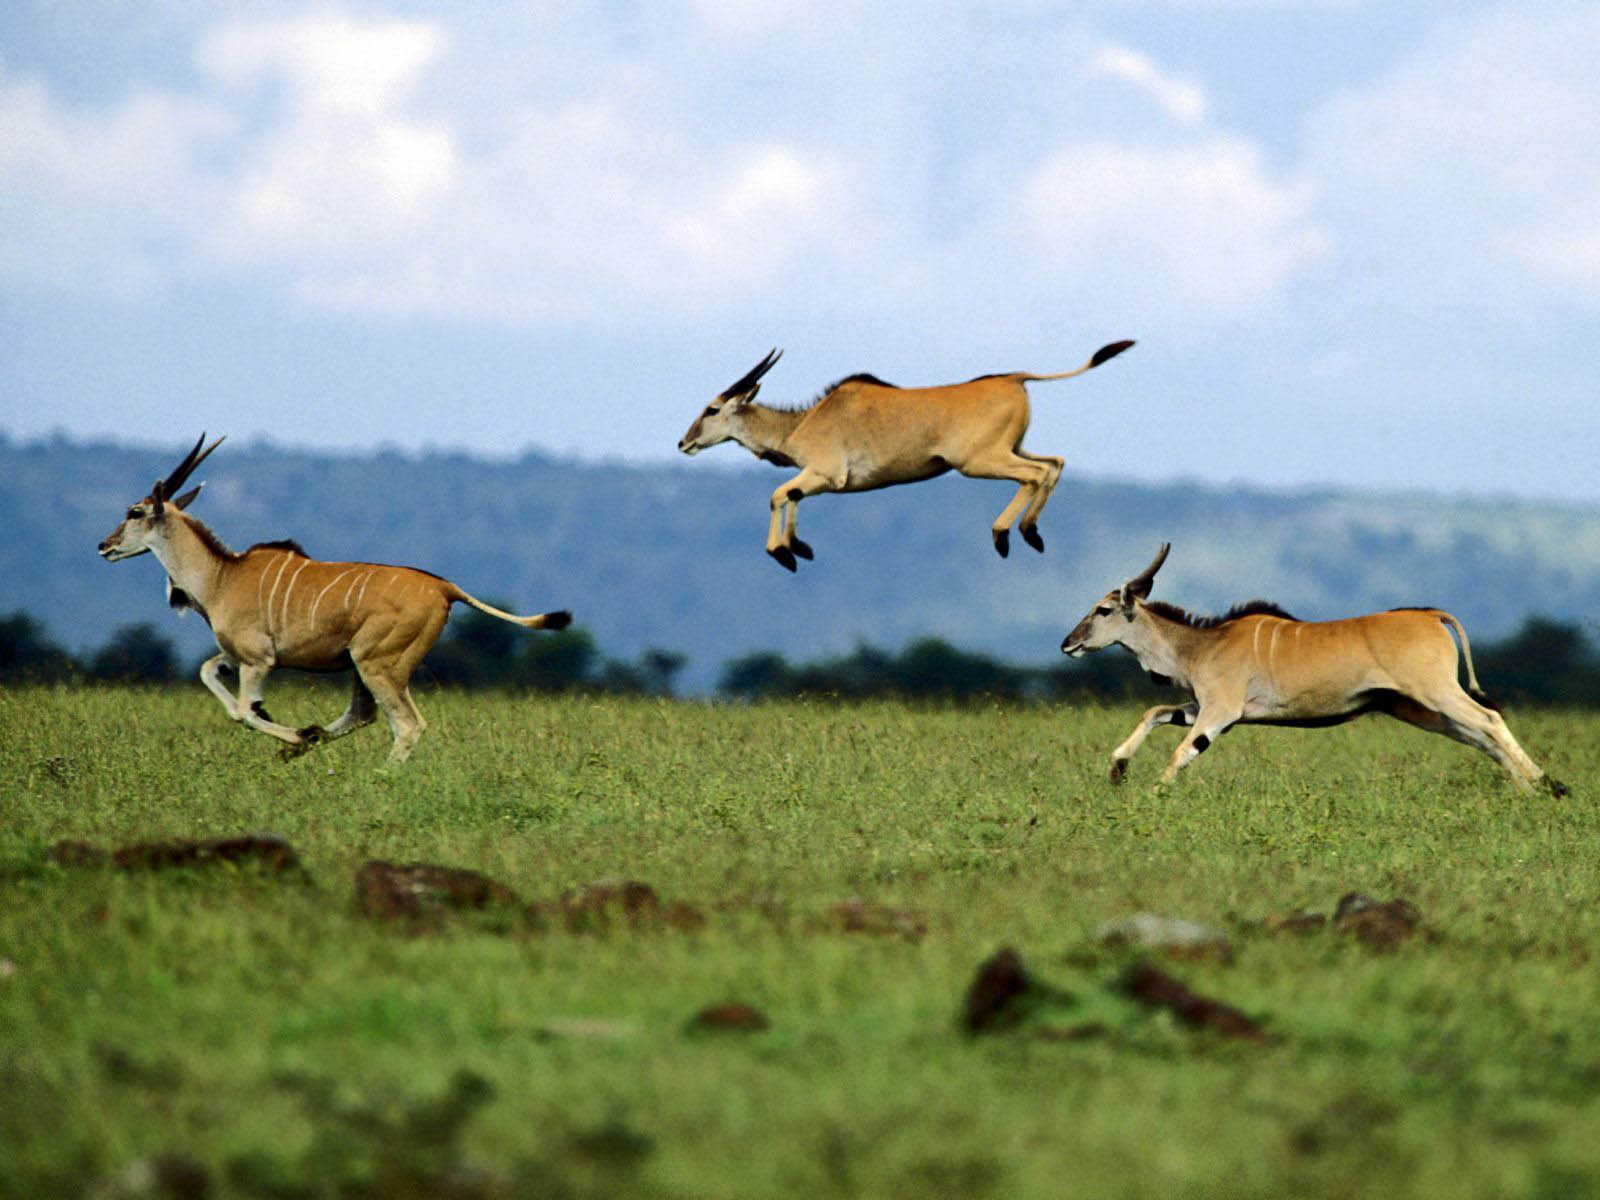 Previous African Wildlife Wallpaper Jumping Contest Cape Eland Kenya Africa